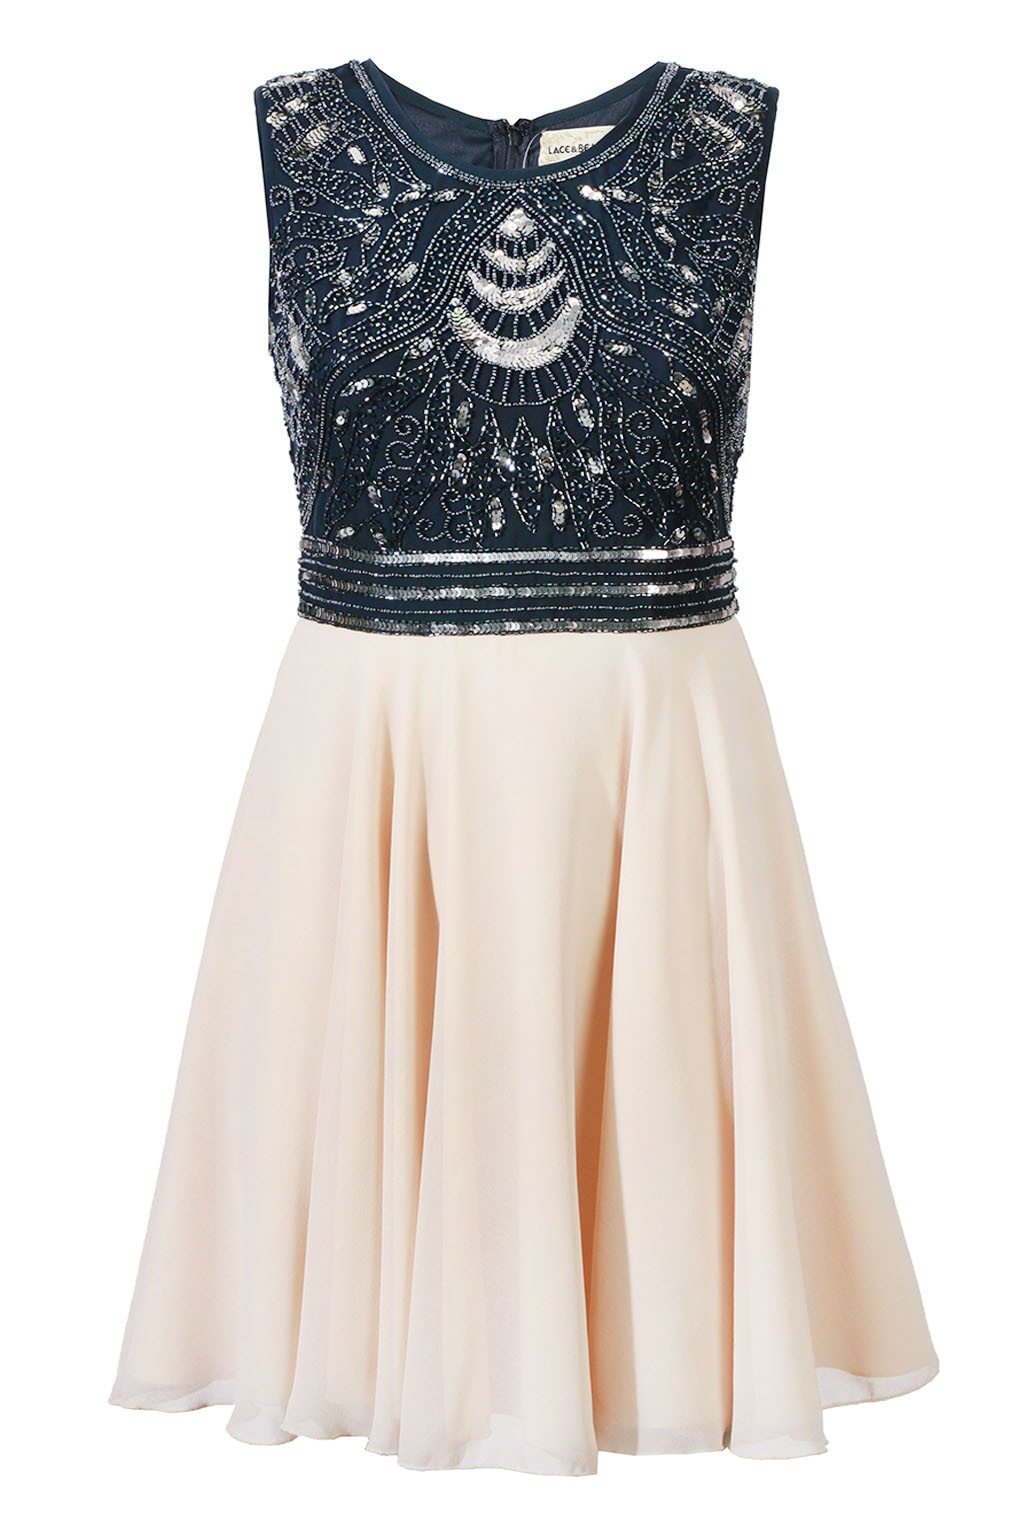 Lace Amp Beads Miami Navy Dress Party Dresses